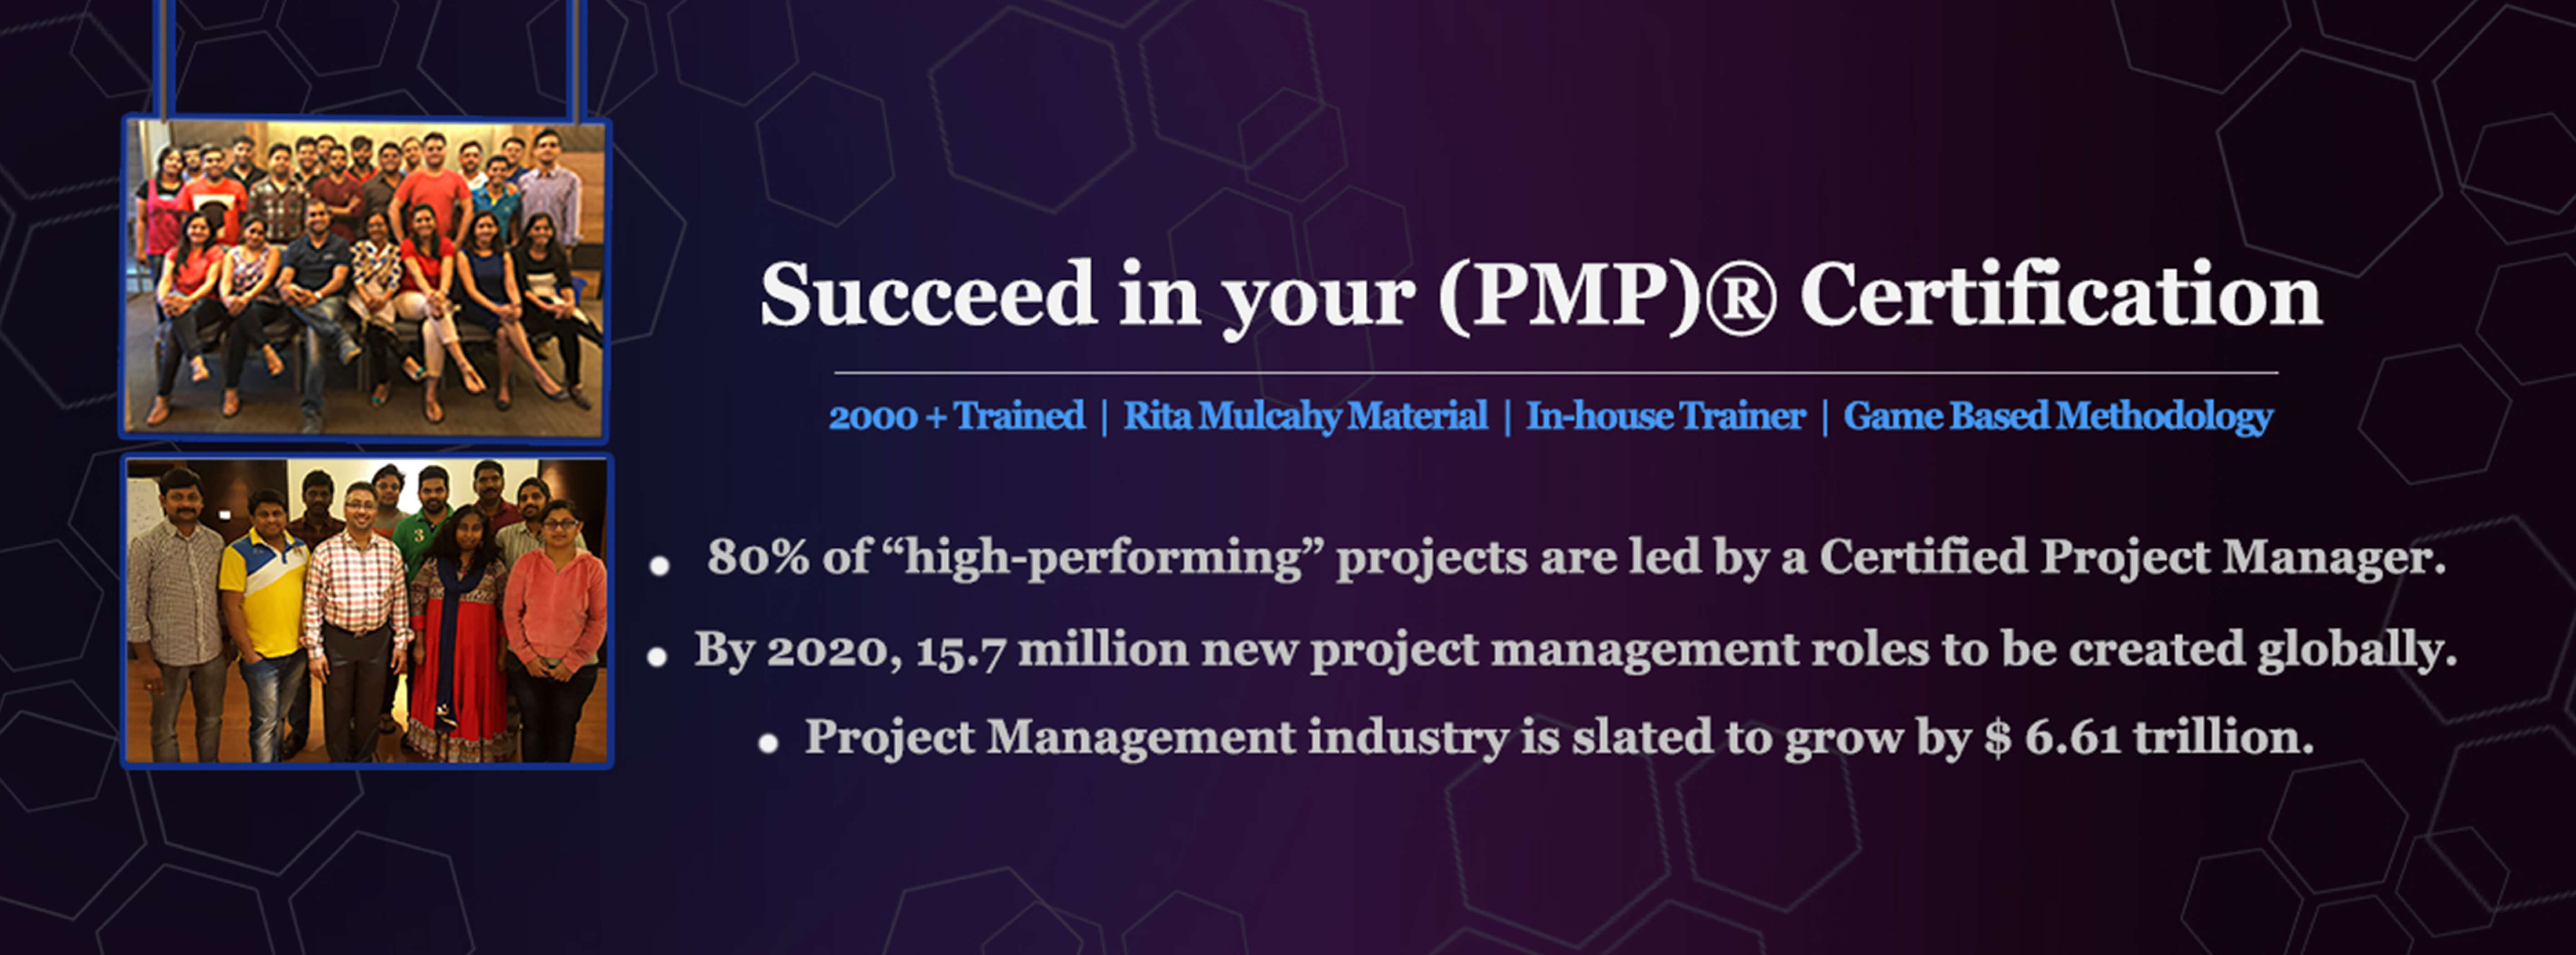 Pmp certification training course in ahmedabad prothoughts 1betcityfo Choice Image